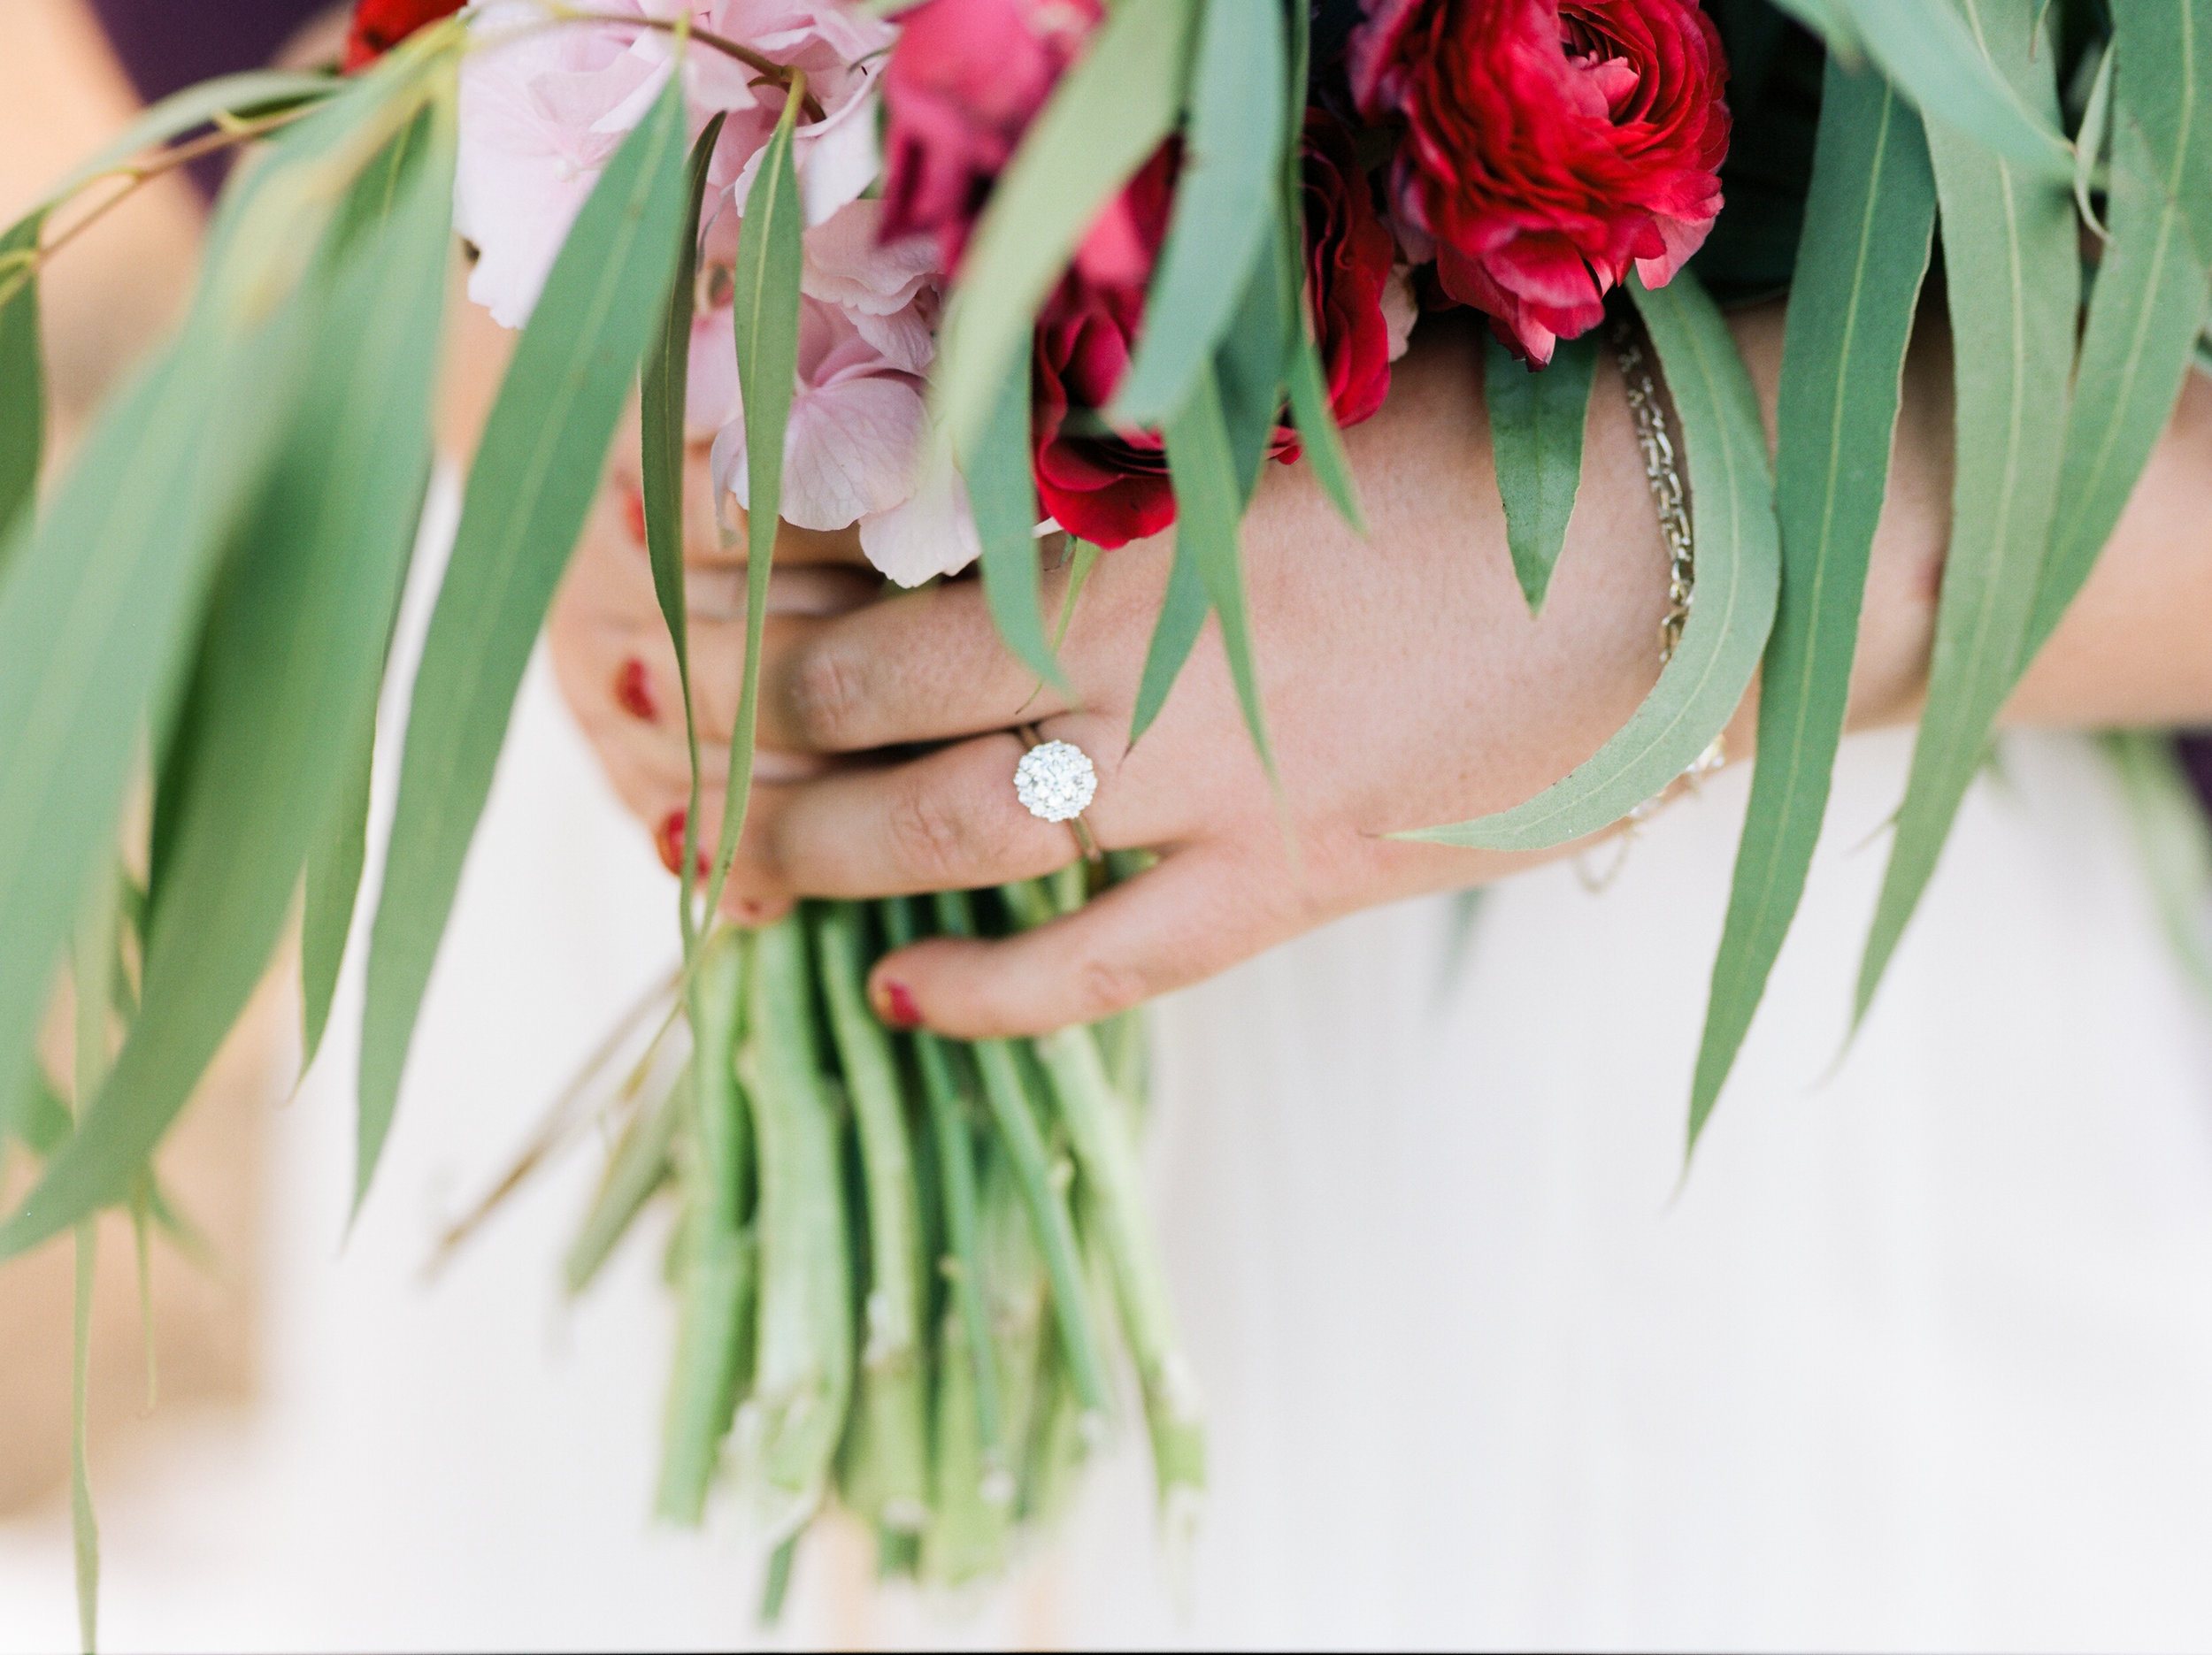 Flowers by Lace and Lilies, Wedding Ring, Eucalyptus, Vibrant Pink Summer Wedding